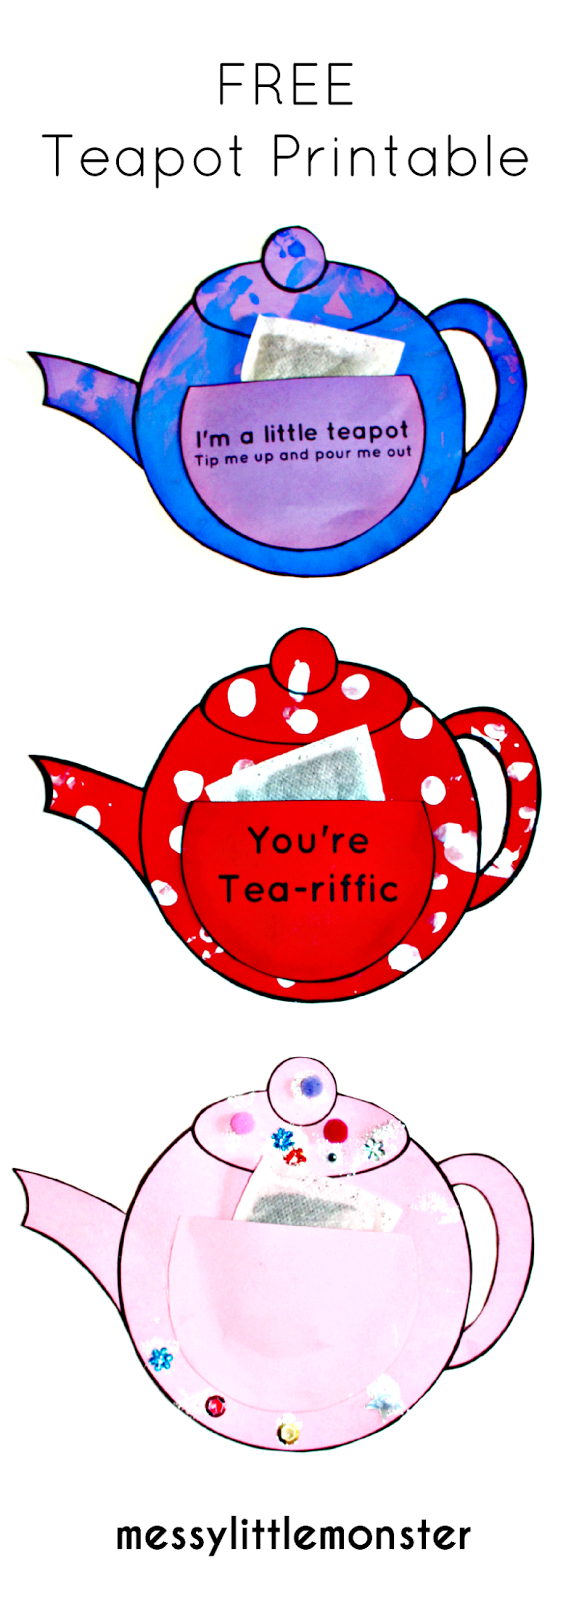 You're Tea-Riffic Teapot Craft - Free Printable Teapot Template - Free Teapot Printable